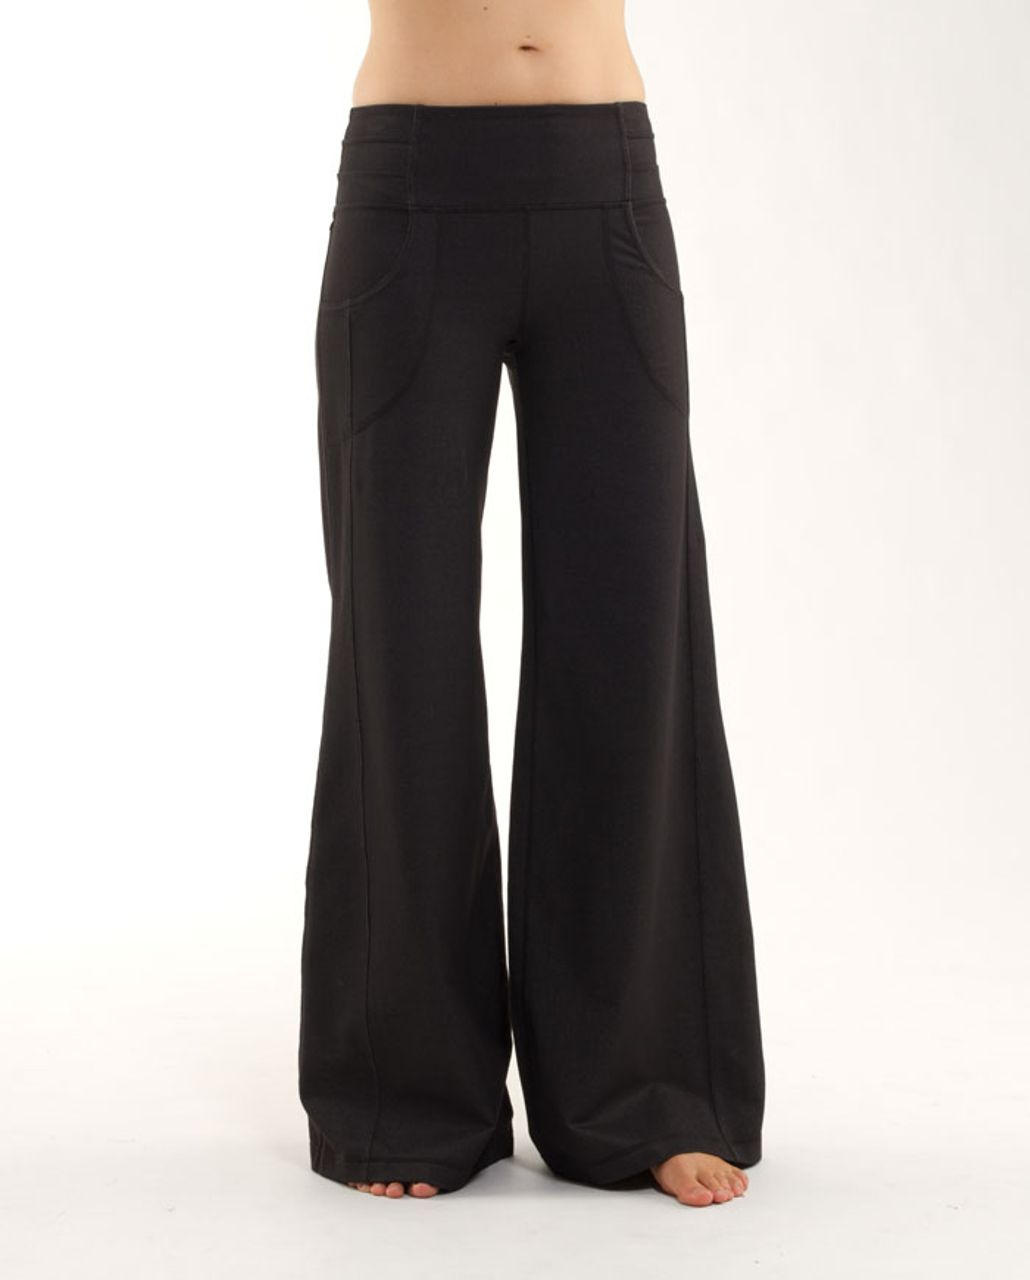 Lululemon Dance Fitness Pant *Denim - Black